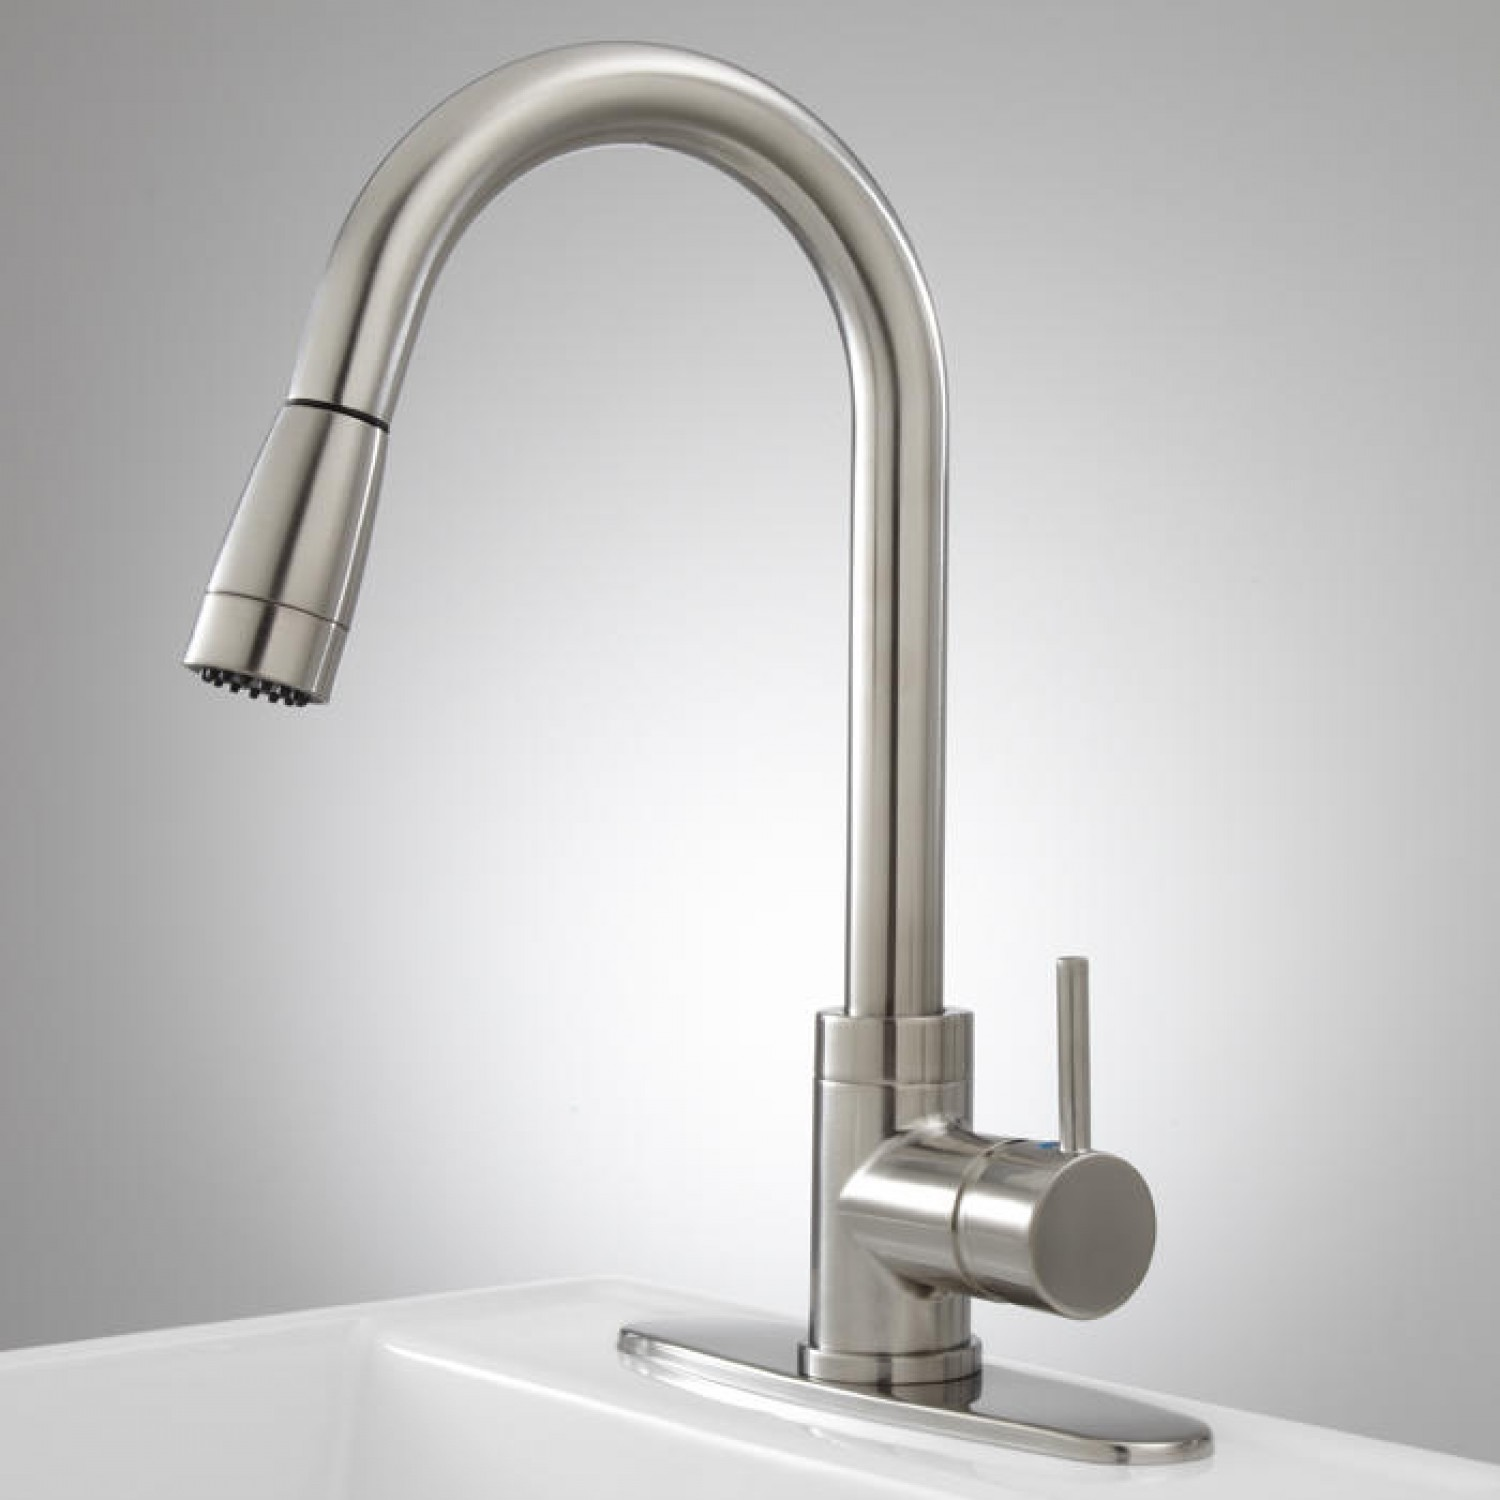 What is a deck plate on a faucet